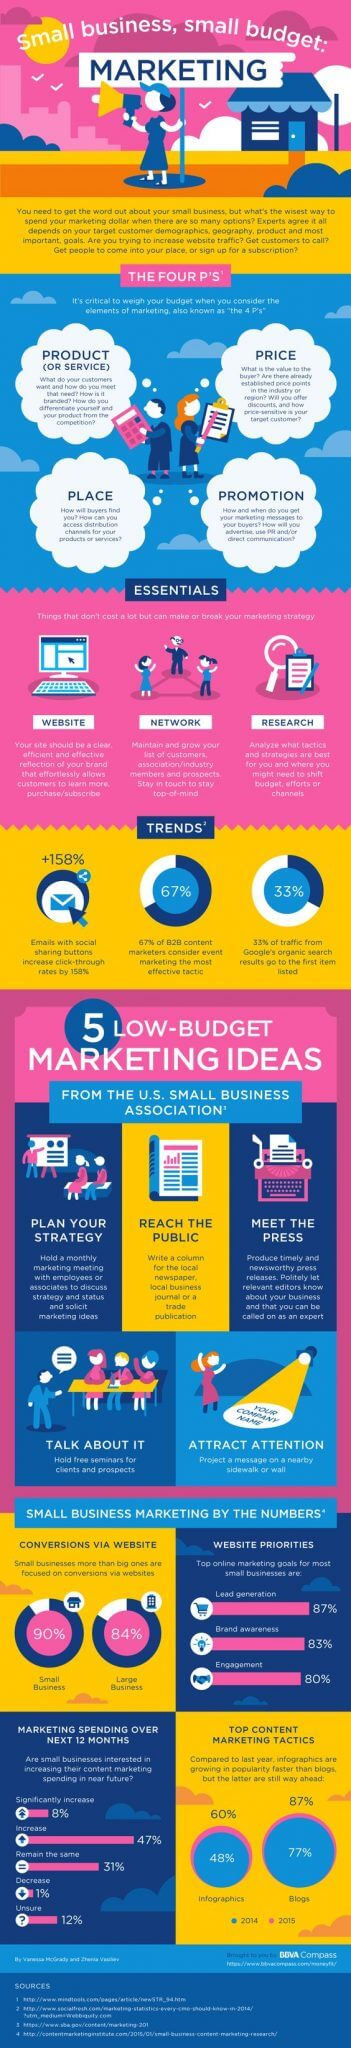 Content Marketing For A SBO